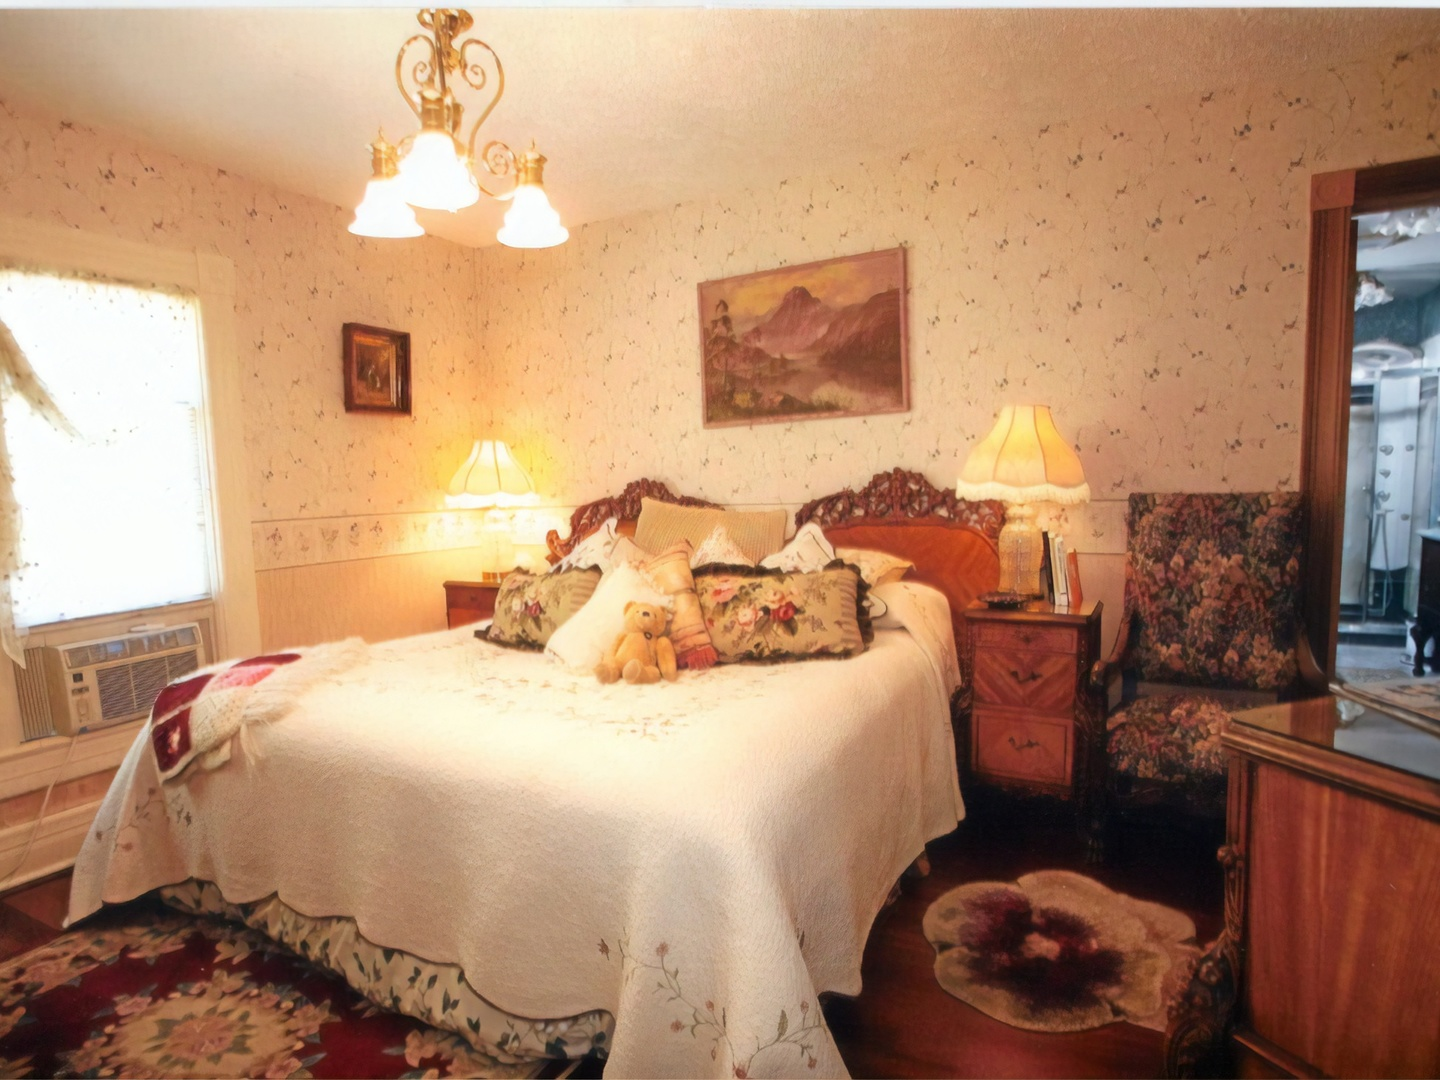 A bedroom with a bed and a fireplace at TC Smith Historic Inn.